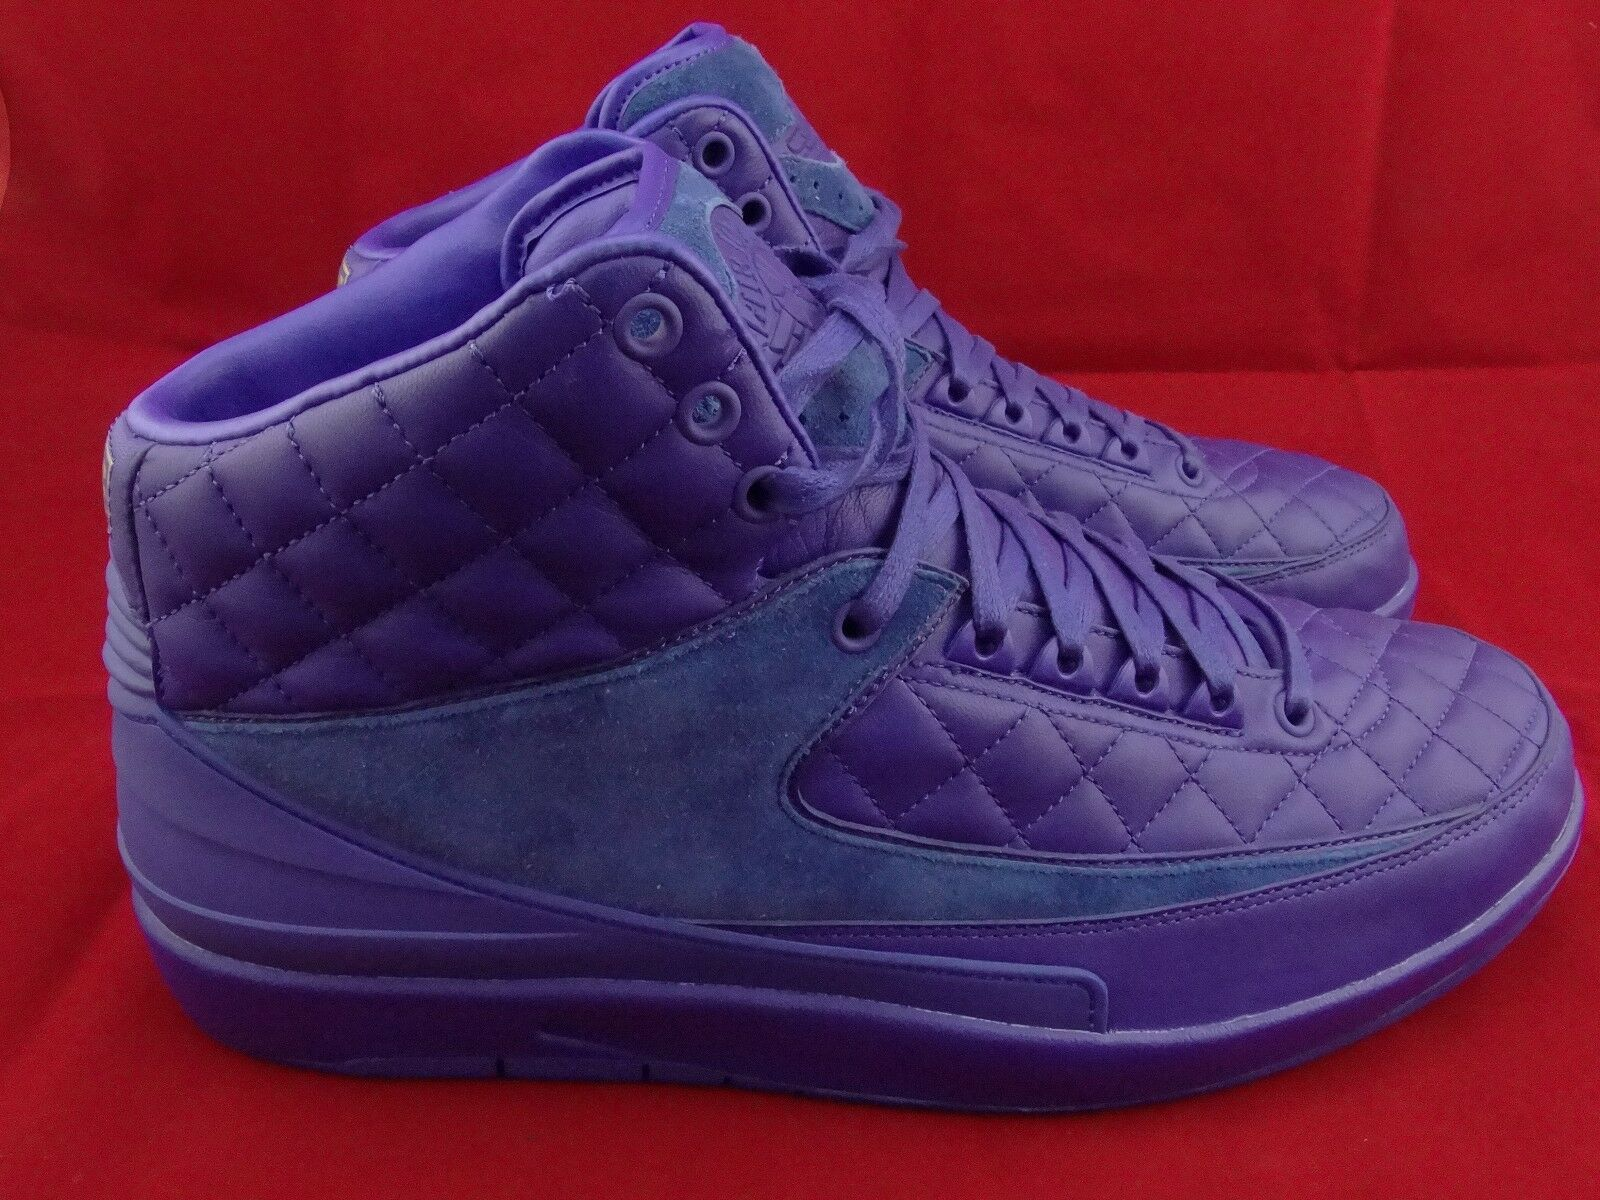 Sample 2015 Nike Air Jordan 2 II Retro Just Don SZ 13  Blue 717170-405 bred nmd